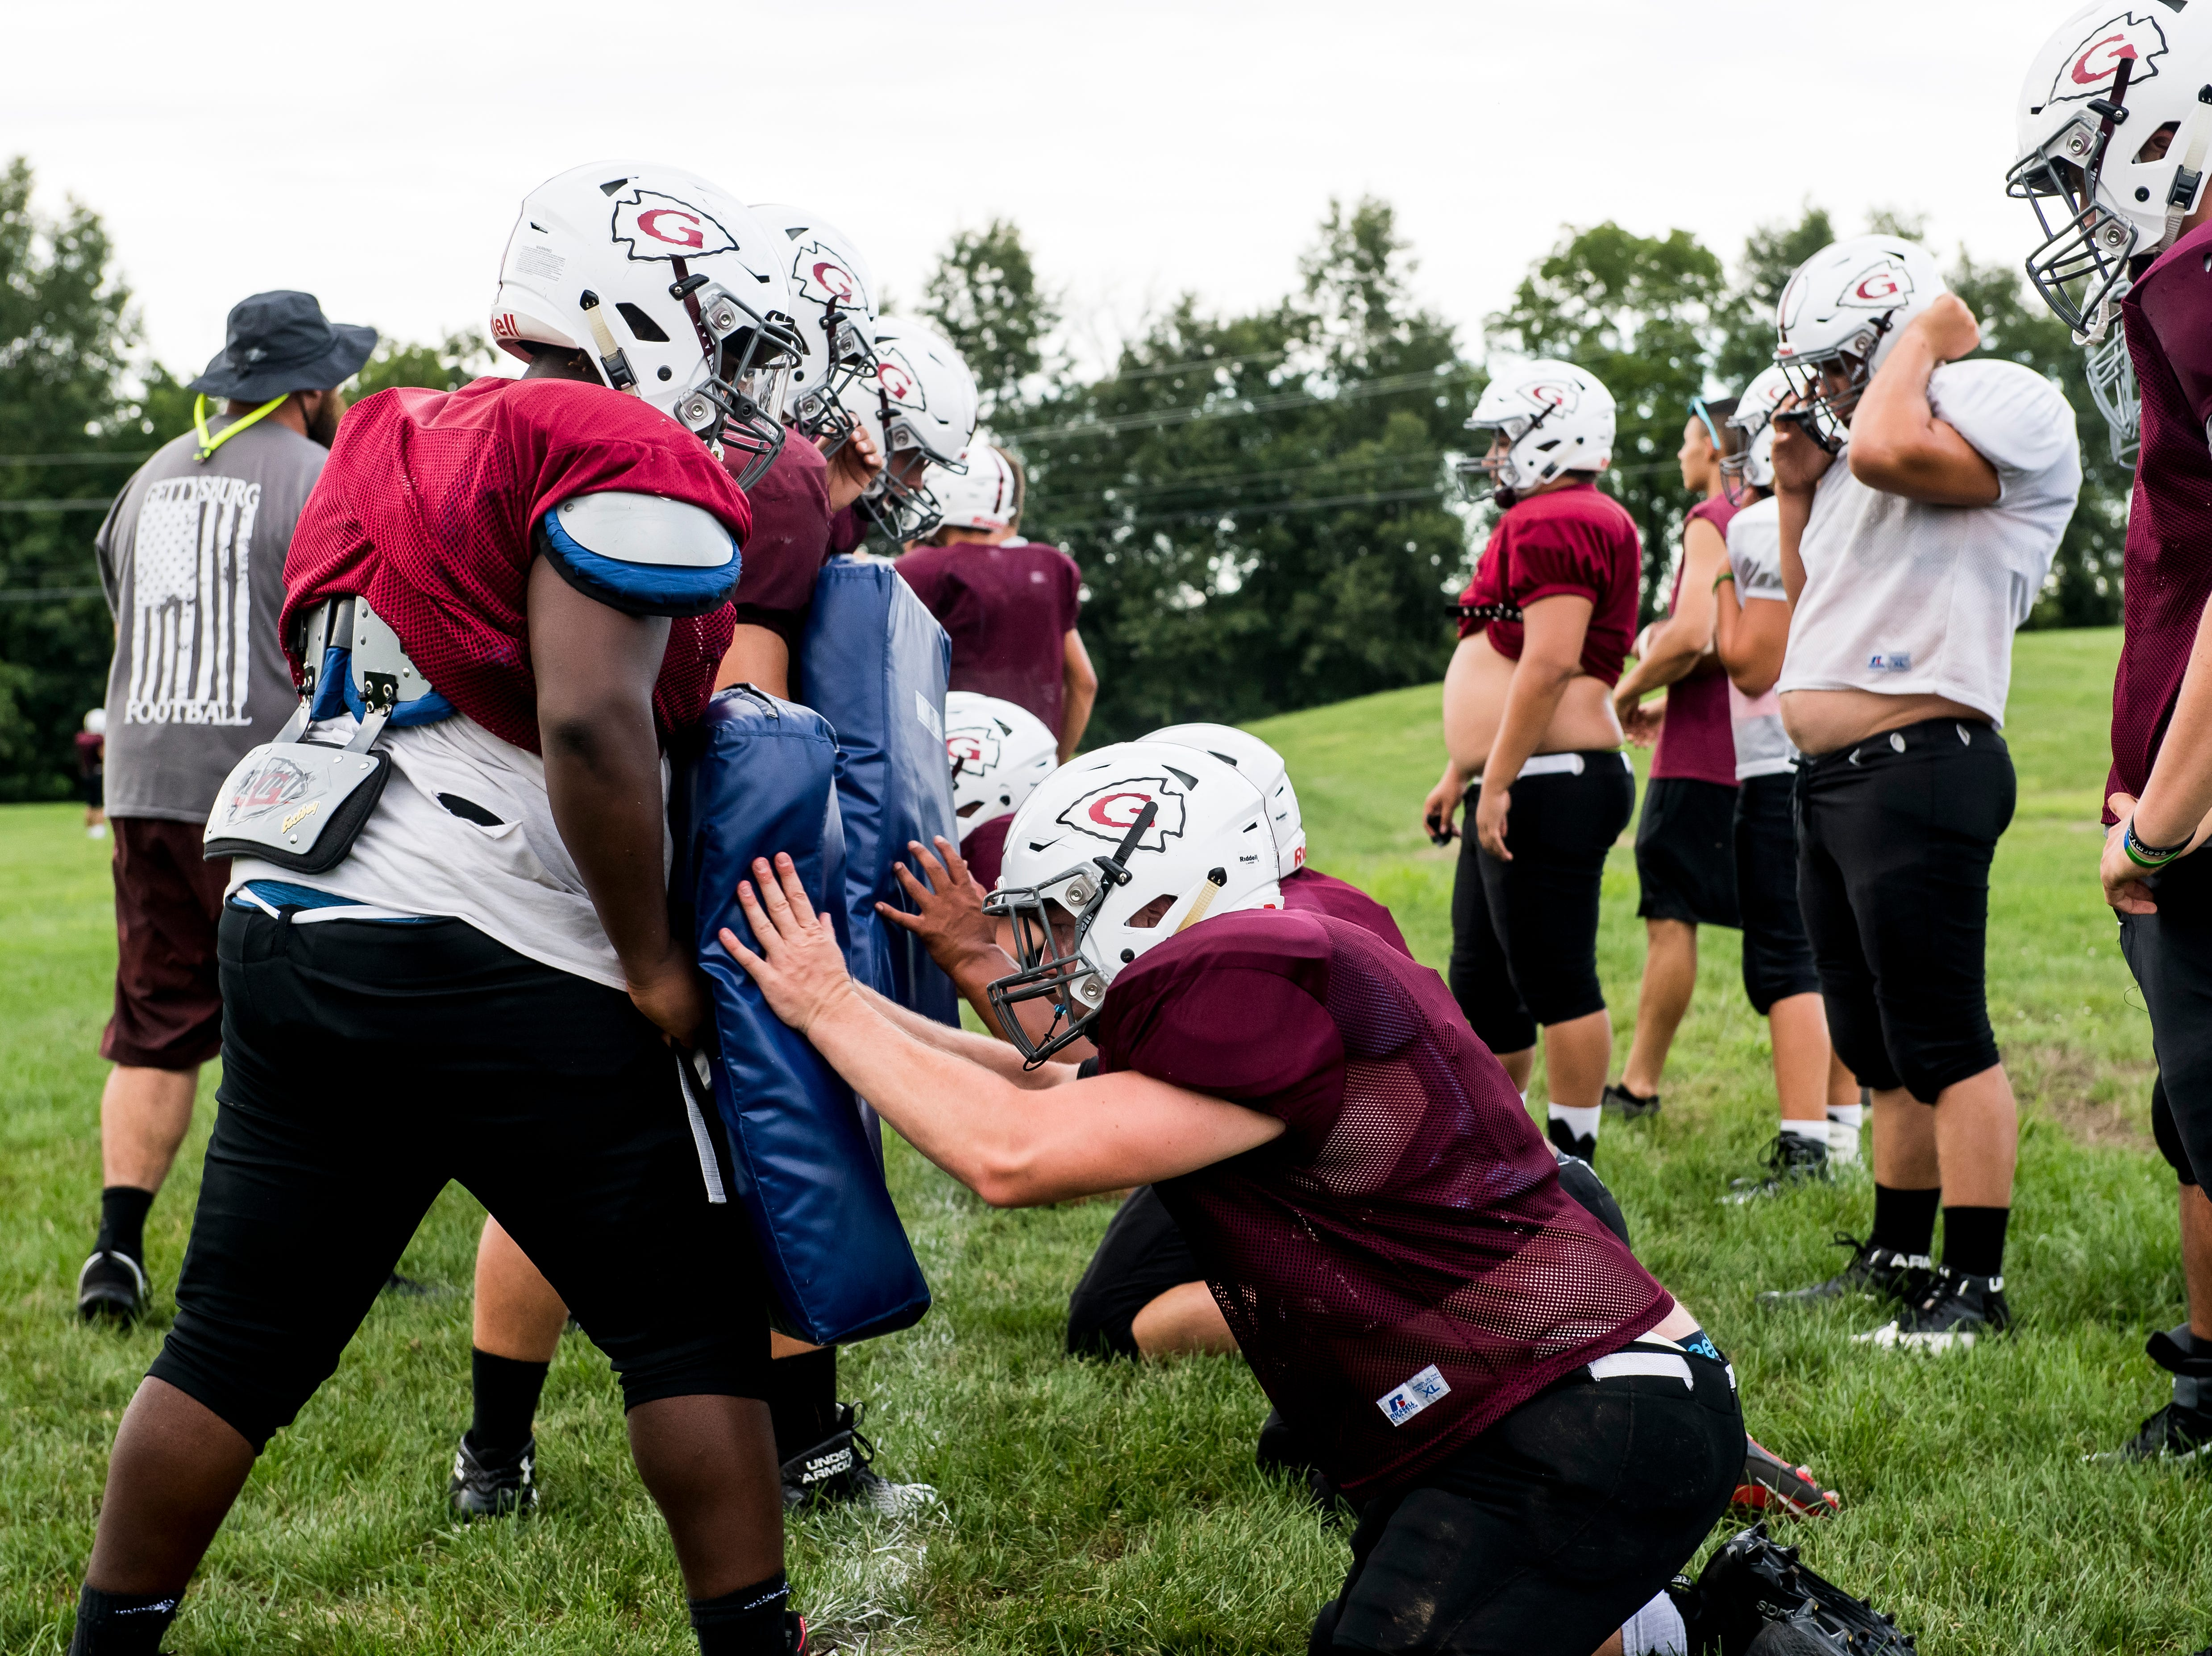 Gettysburg football players run through a drill during the first day of fall sports practice on Monday, August 13, 2018.